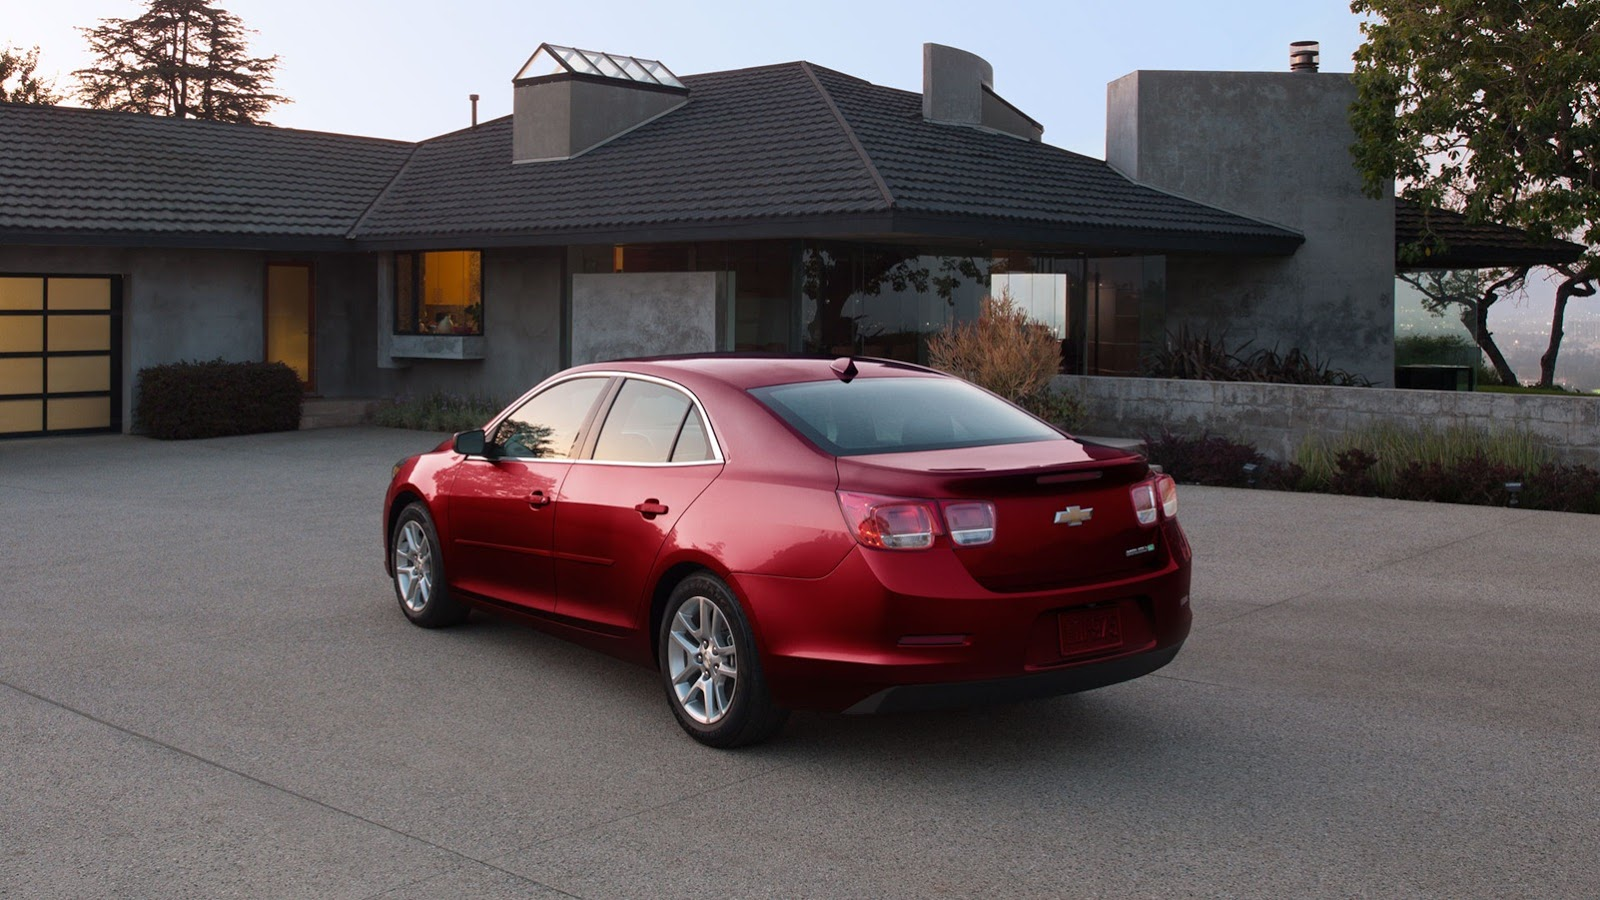 Updated 2014 Chevrolet Malibu to Provide More Rear Space as Well